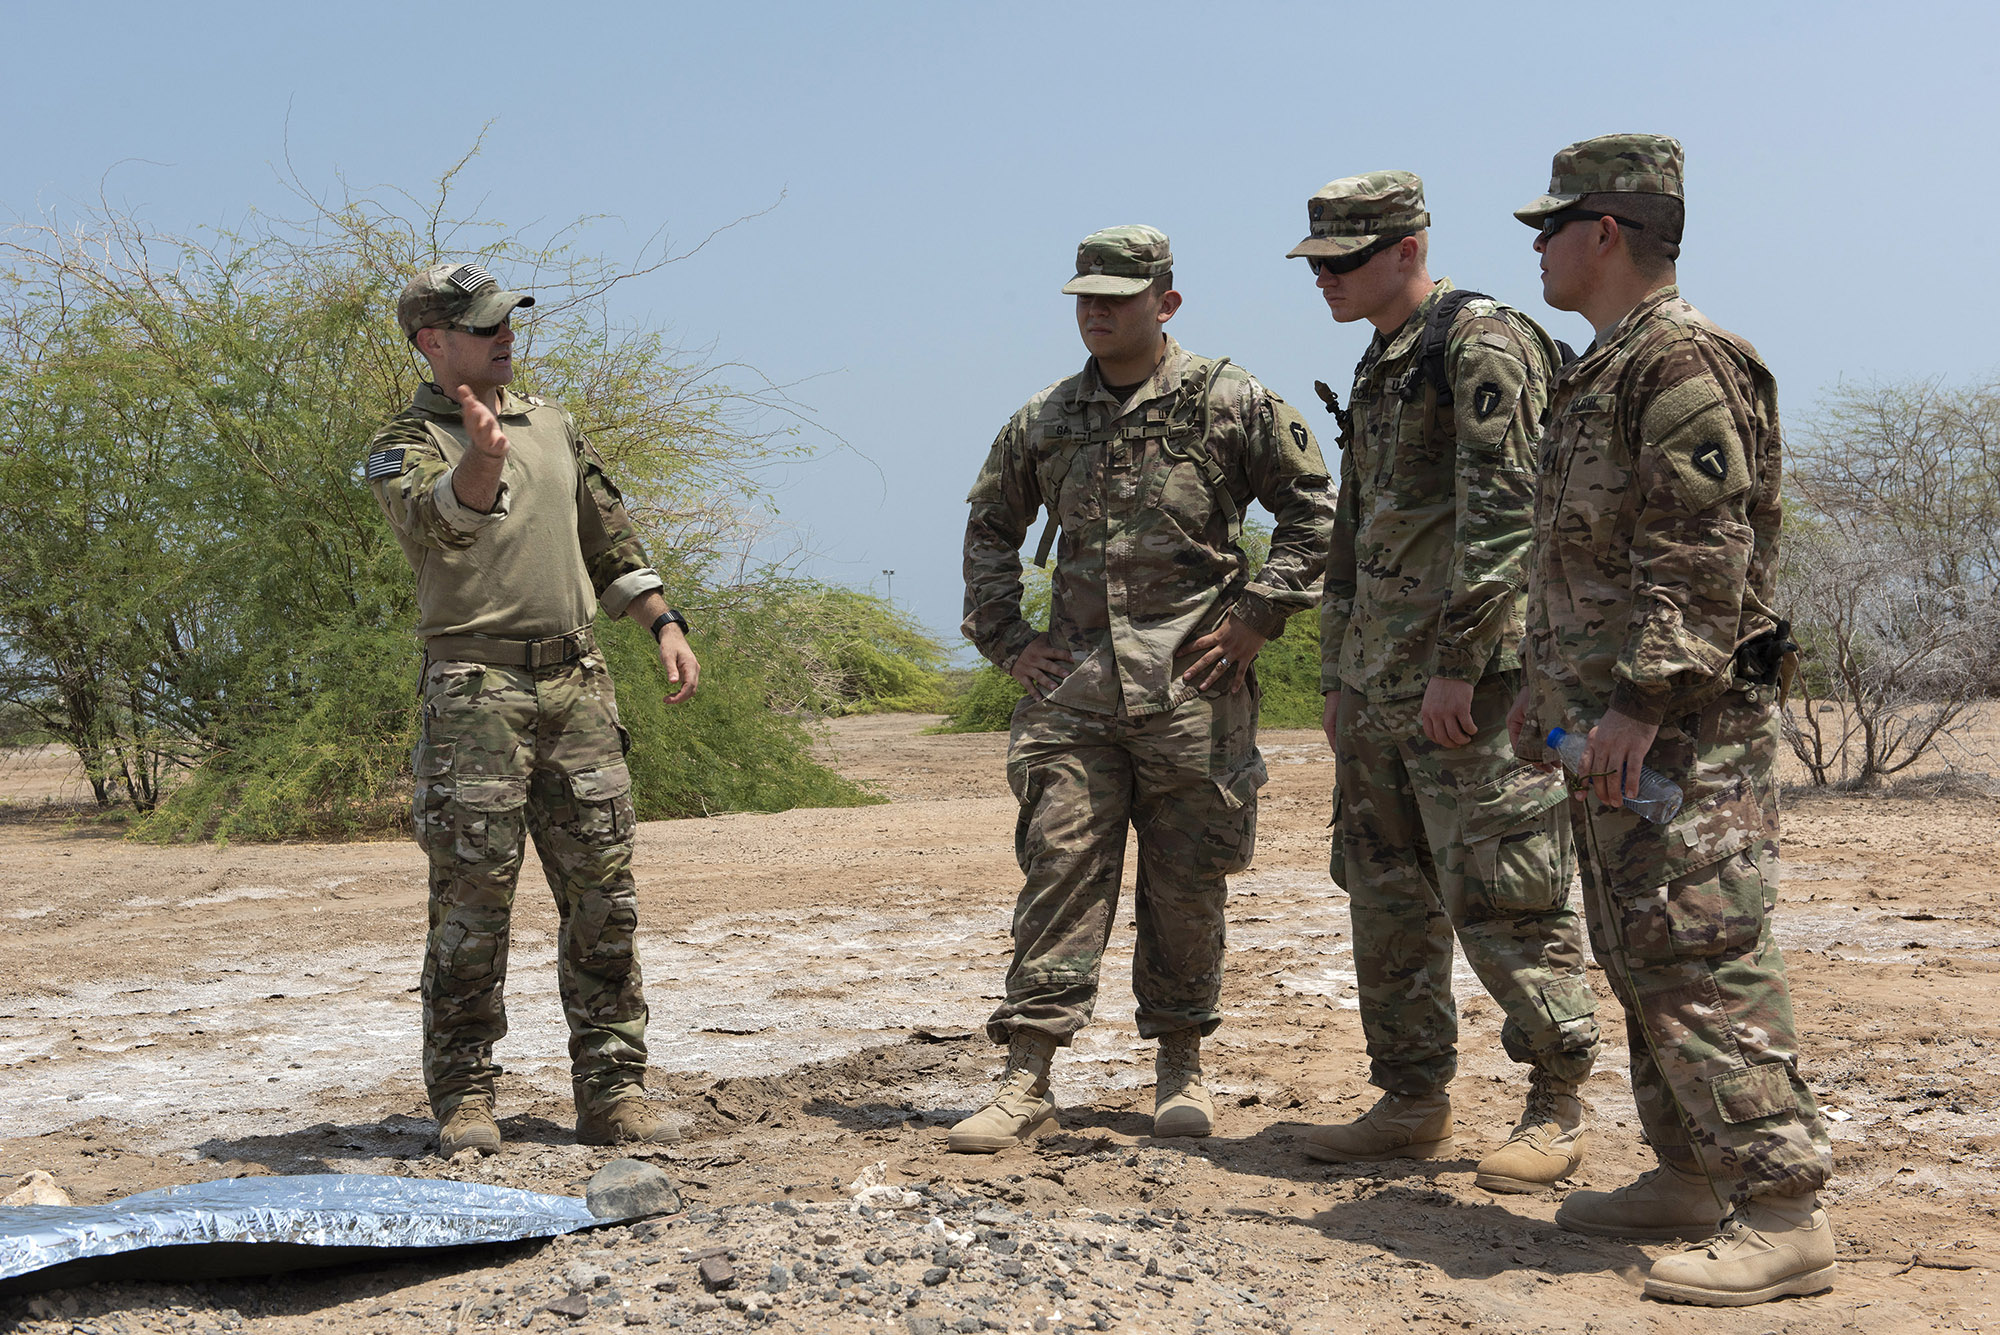 From Left: U.S. Air Force Tech. Sgt. Adam Murphy, a survival, evasion, resistance and escape specialist assigned to Combined Joint Task Force-Horn of Africa, describes how to use a mylar blanket as a hasty signaling device to U.S. Army Pfc. Jonathan Galindo, a field artillery firefinder radar operator, Spec. Killian Tooke, a radar repairer, and Sgt. 1st Class Amando Vidal, a field artillery firefinder radar operator, all assigned to 3rd Battalion, 133rd Field Artillery Regiment, Texas National Guard, during survival skills training on Camp Lemonnier, Djibouti, Oct. 13, 2018. During this training, service members performed various skills such as constructing a shelter, finding alternative water sources and signaling for rescue. (U.S. Air National Guard photo by Master Sgt. Sarah Mattison)